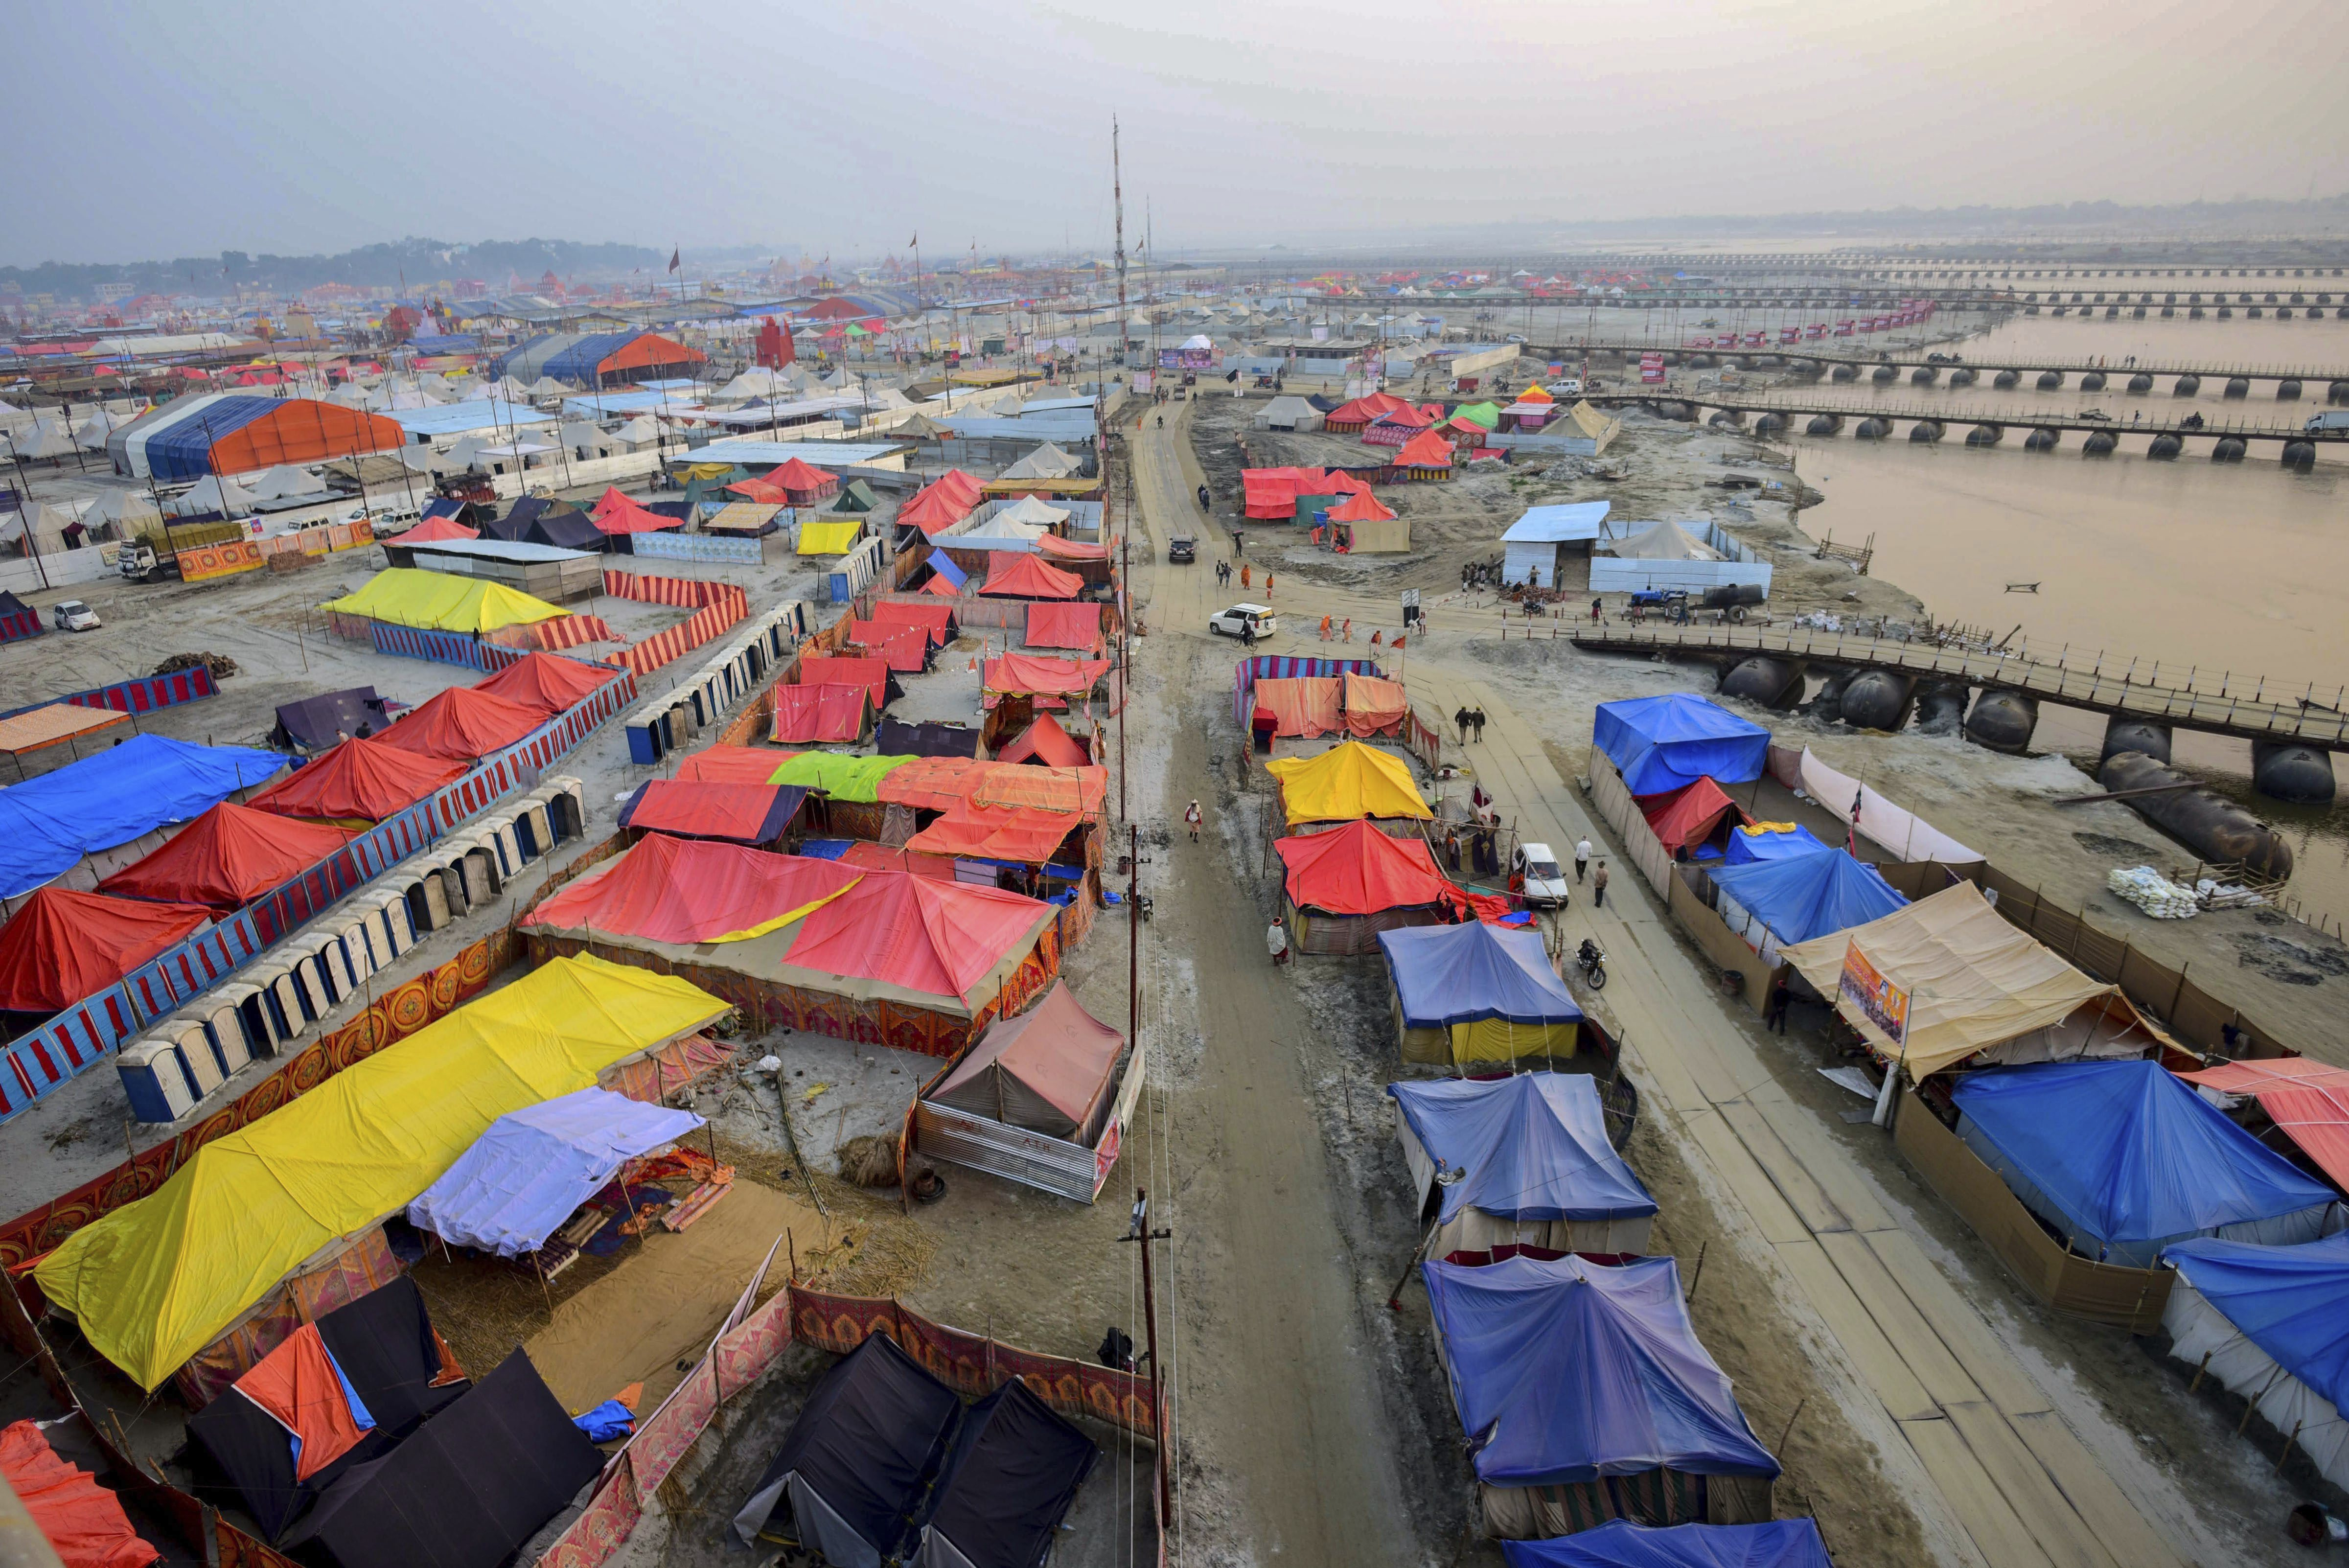 A view of temporary tents set up for devotees and visitors at the bank of river Ganga ahead of Kumbh Mela 2019, in Allahabad - PTI